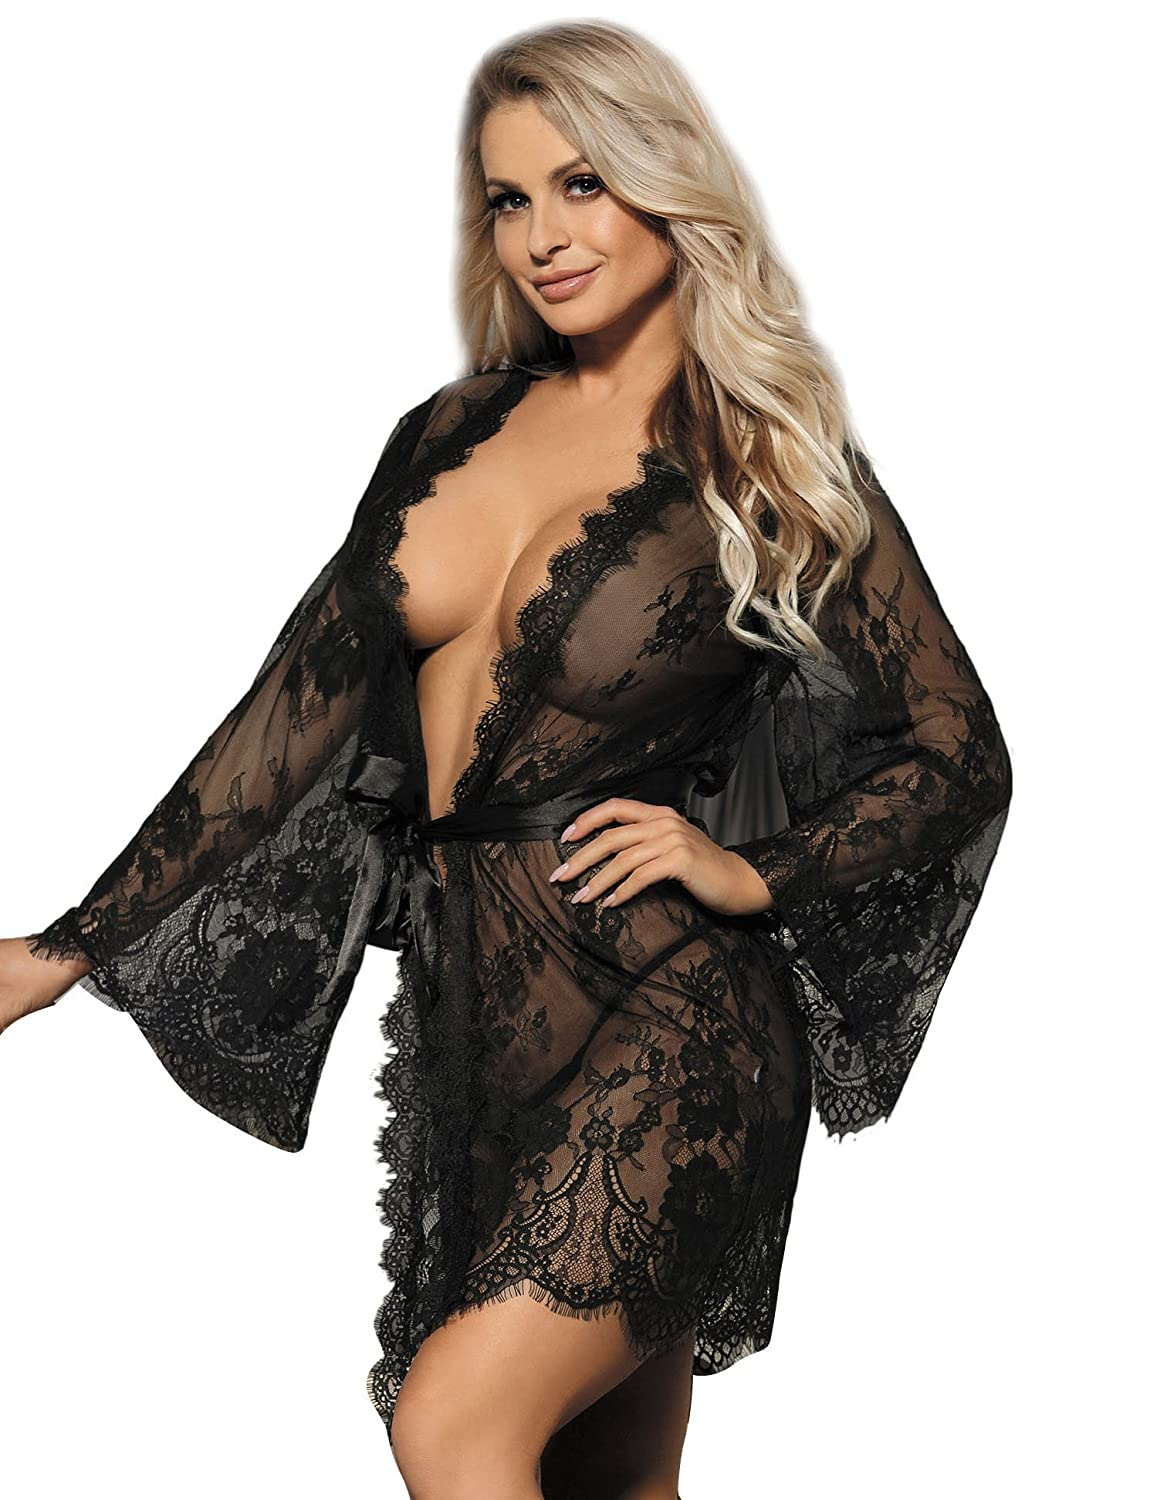 ohyeahlady Women Lace Robe Lingerie Nightdresses Plus Size Sheer Kimono Long  Sleeve Nightwear Sleepwear  Amazon.co.uk  Clothing 41cff2e75